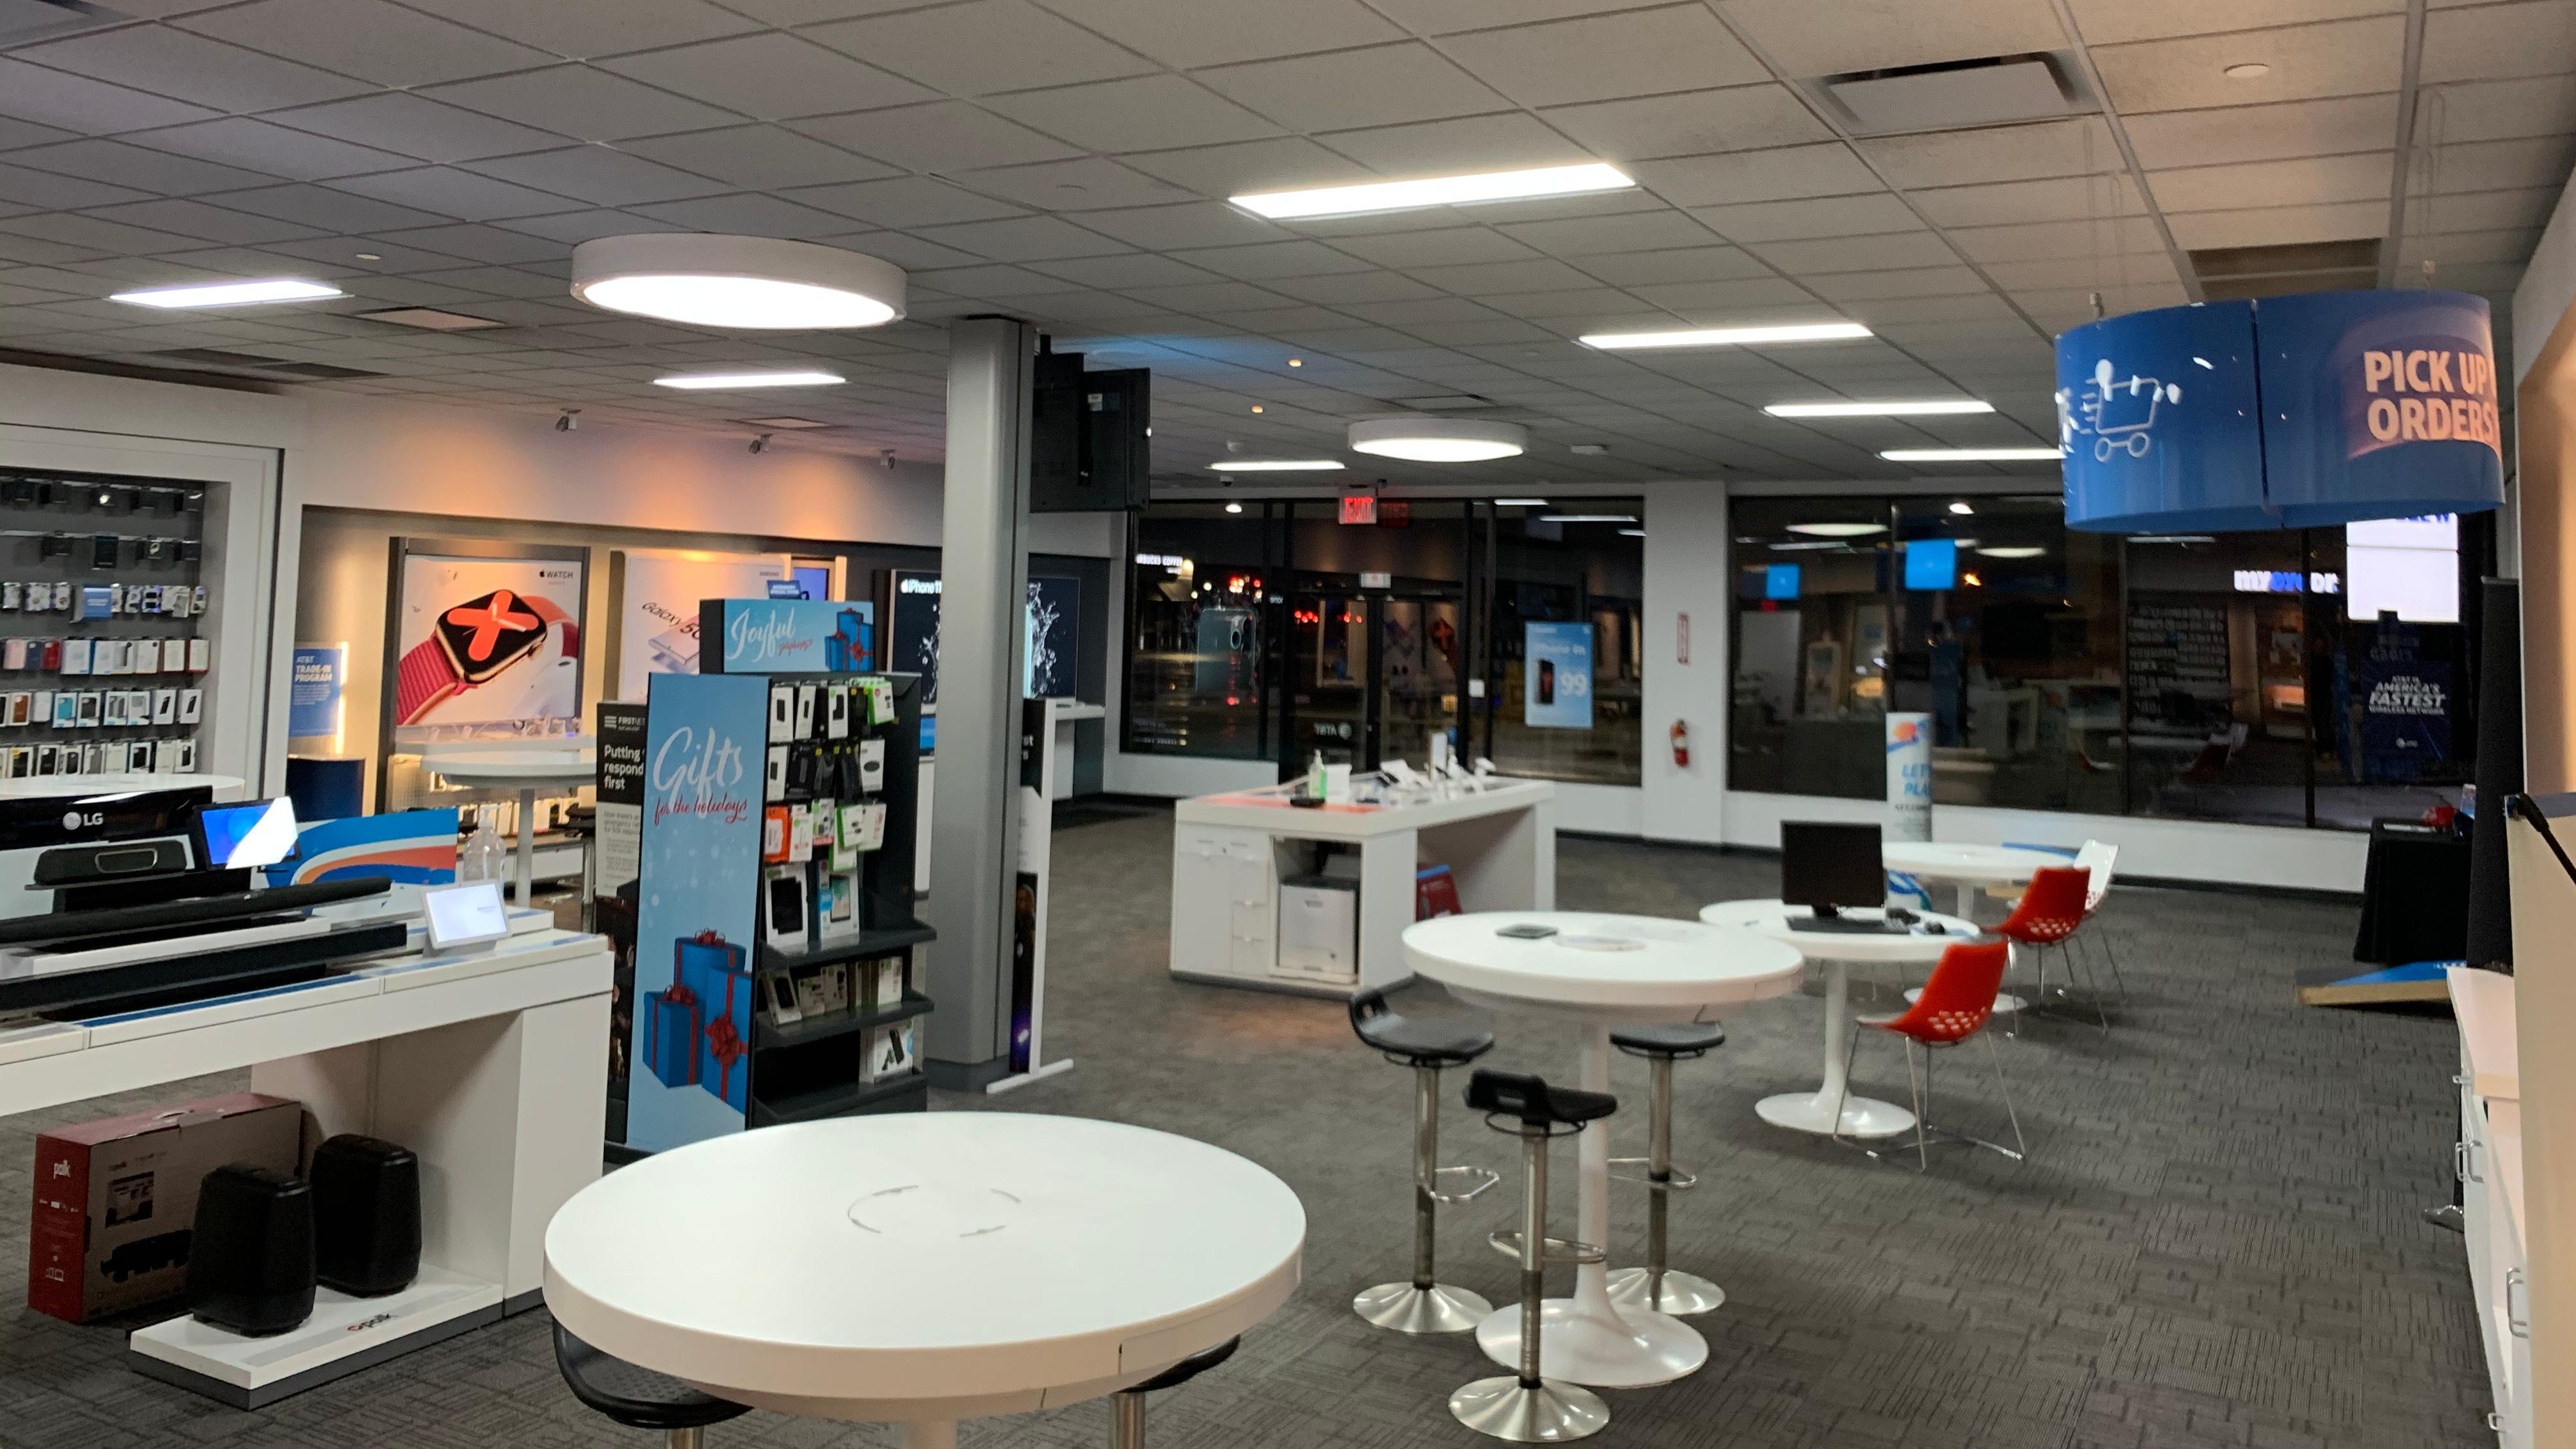 kokomo store apple iphone 12 and samsung devices kokomo in at t kokomo store apple iphone 12 and